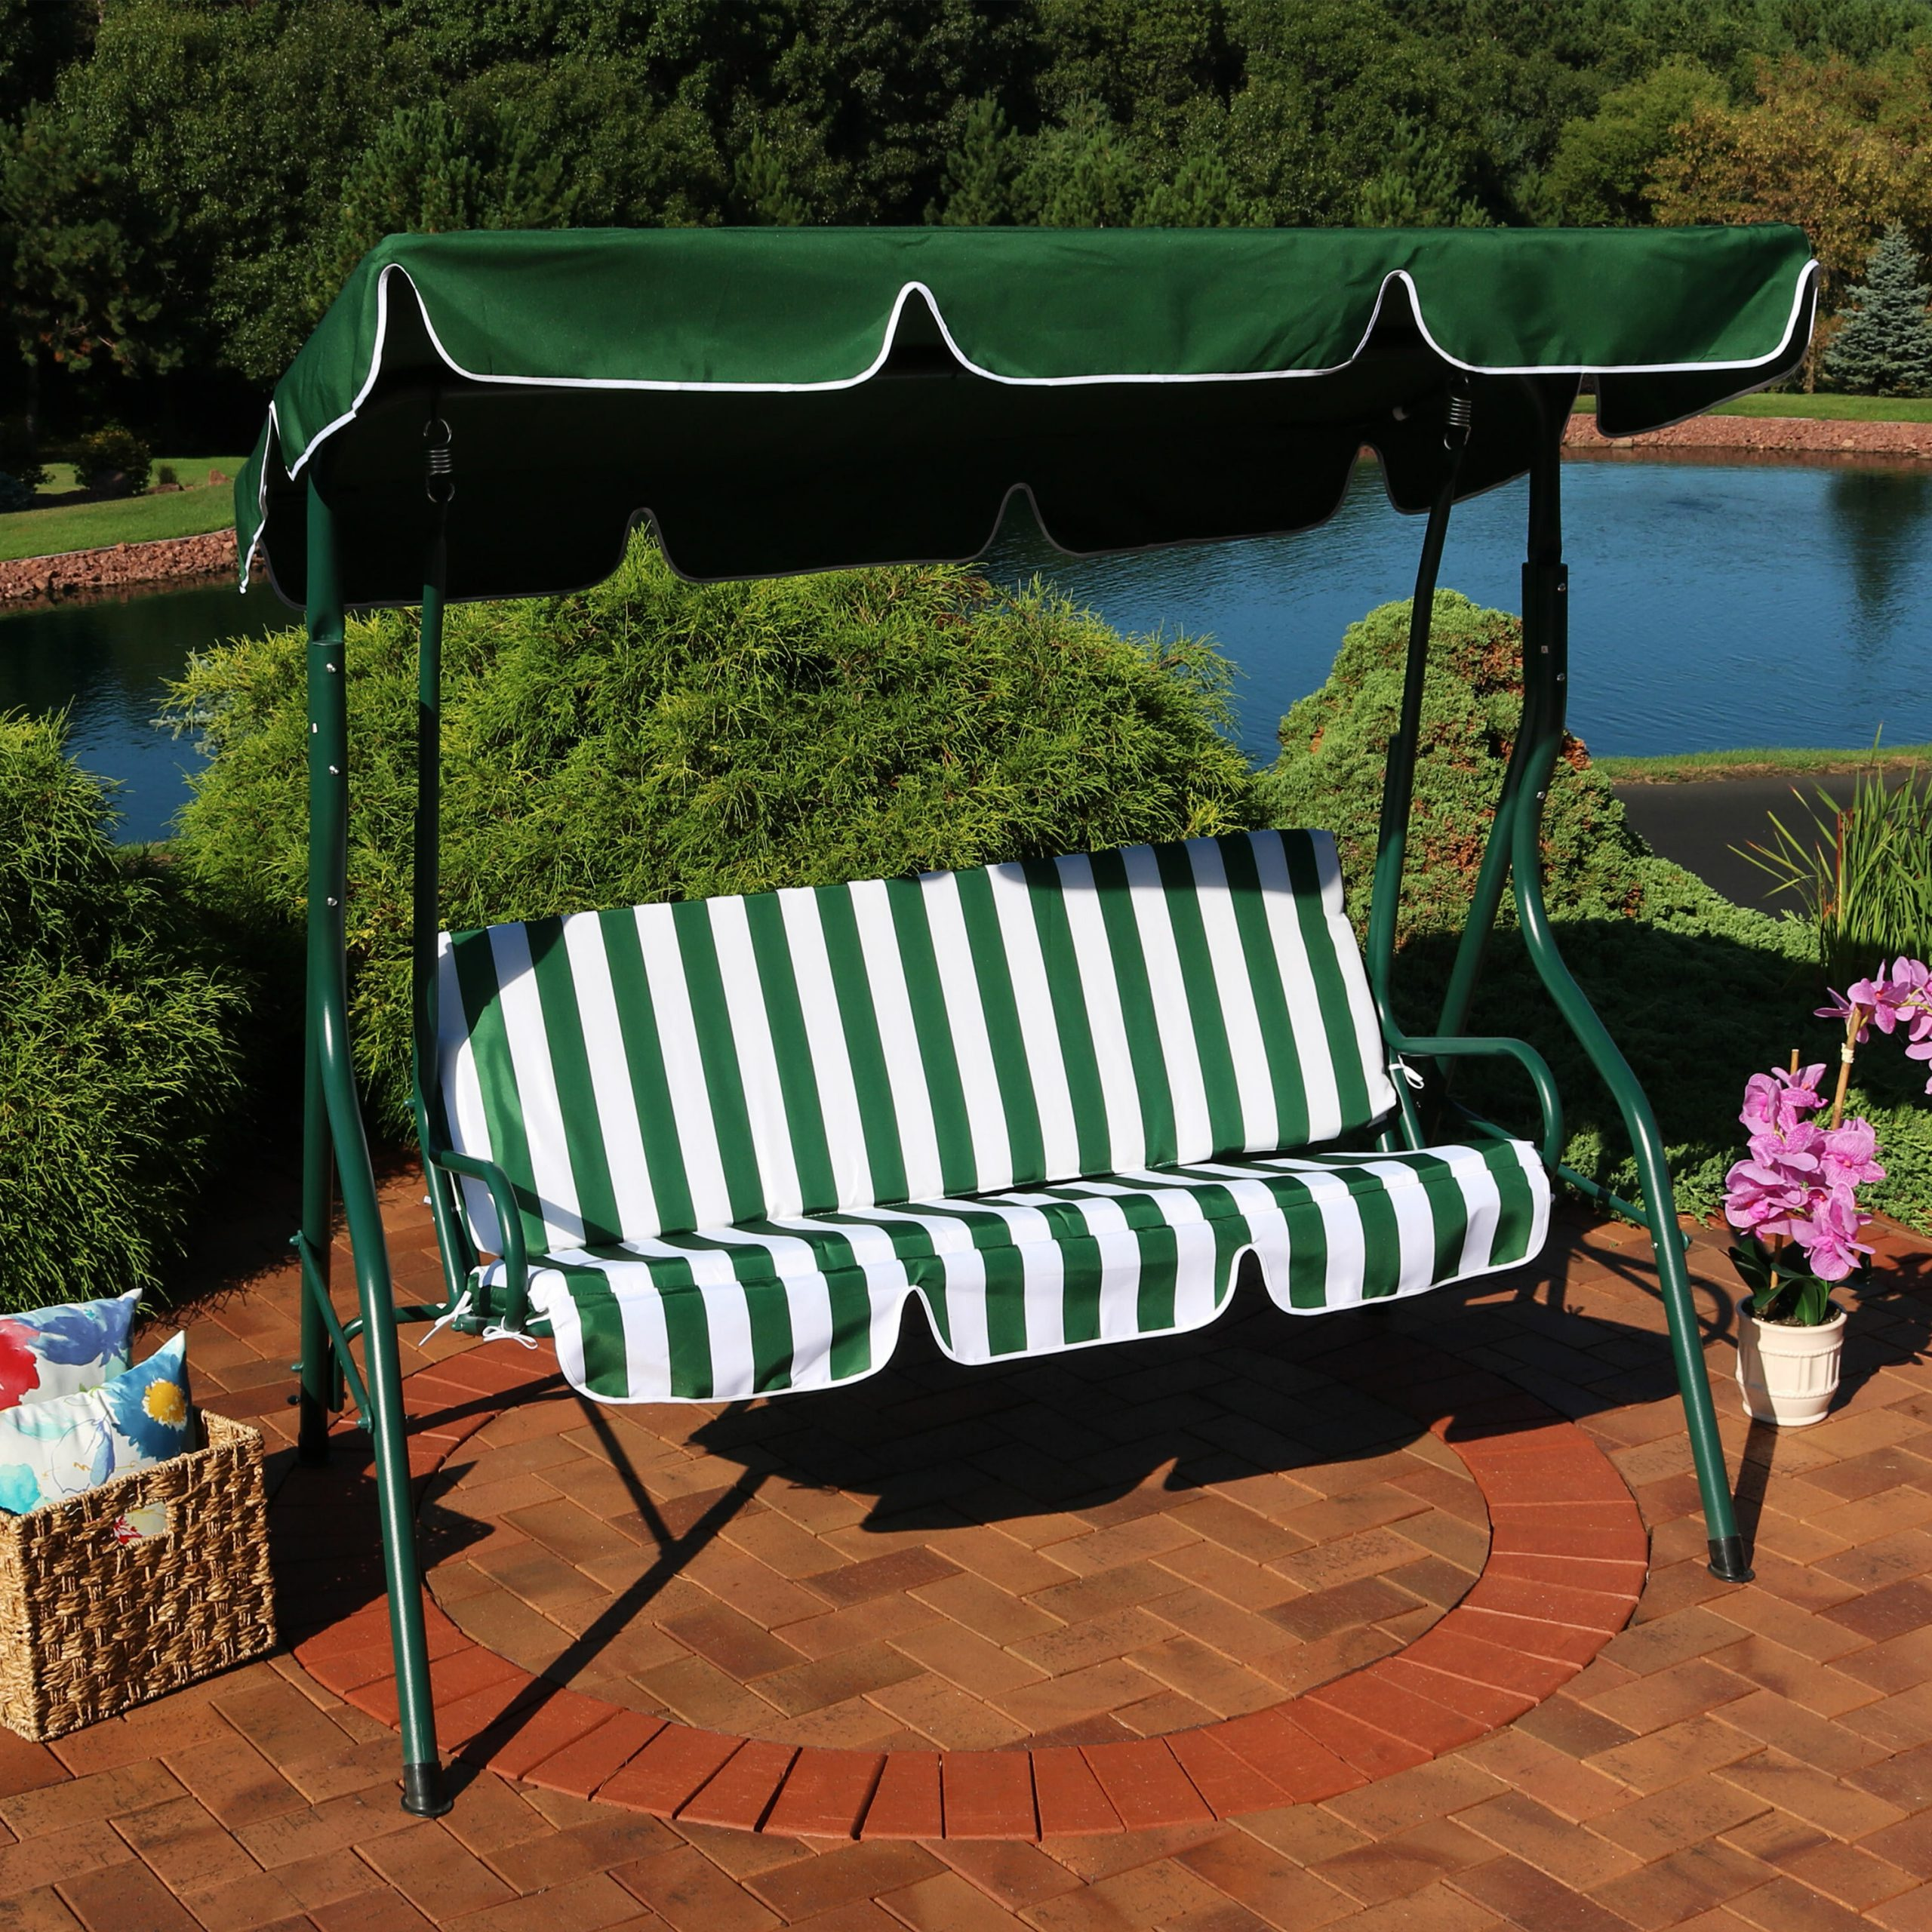 3 Seats Patio Canopy Swing Gliders Hammock Cushioned Steel Frame Within Preferred Sunseri 3 Person Striped Seat Outdoor Canopy Patio Porch Swing With Stand (Gallery 16 of 25)